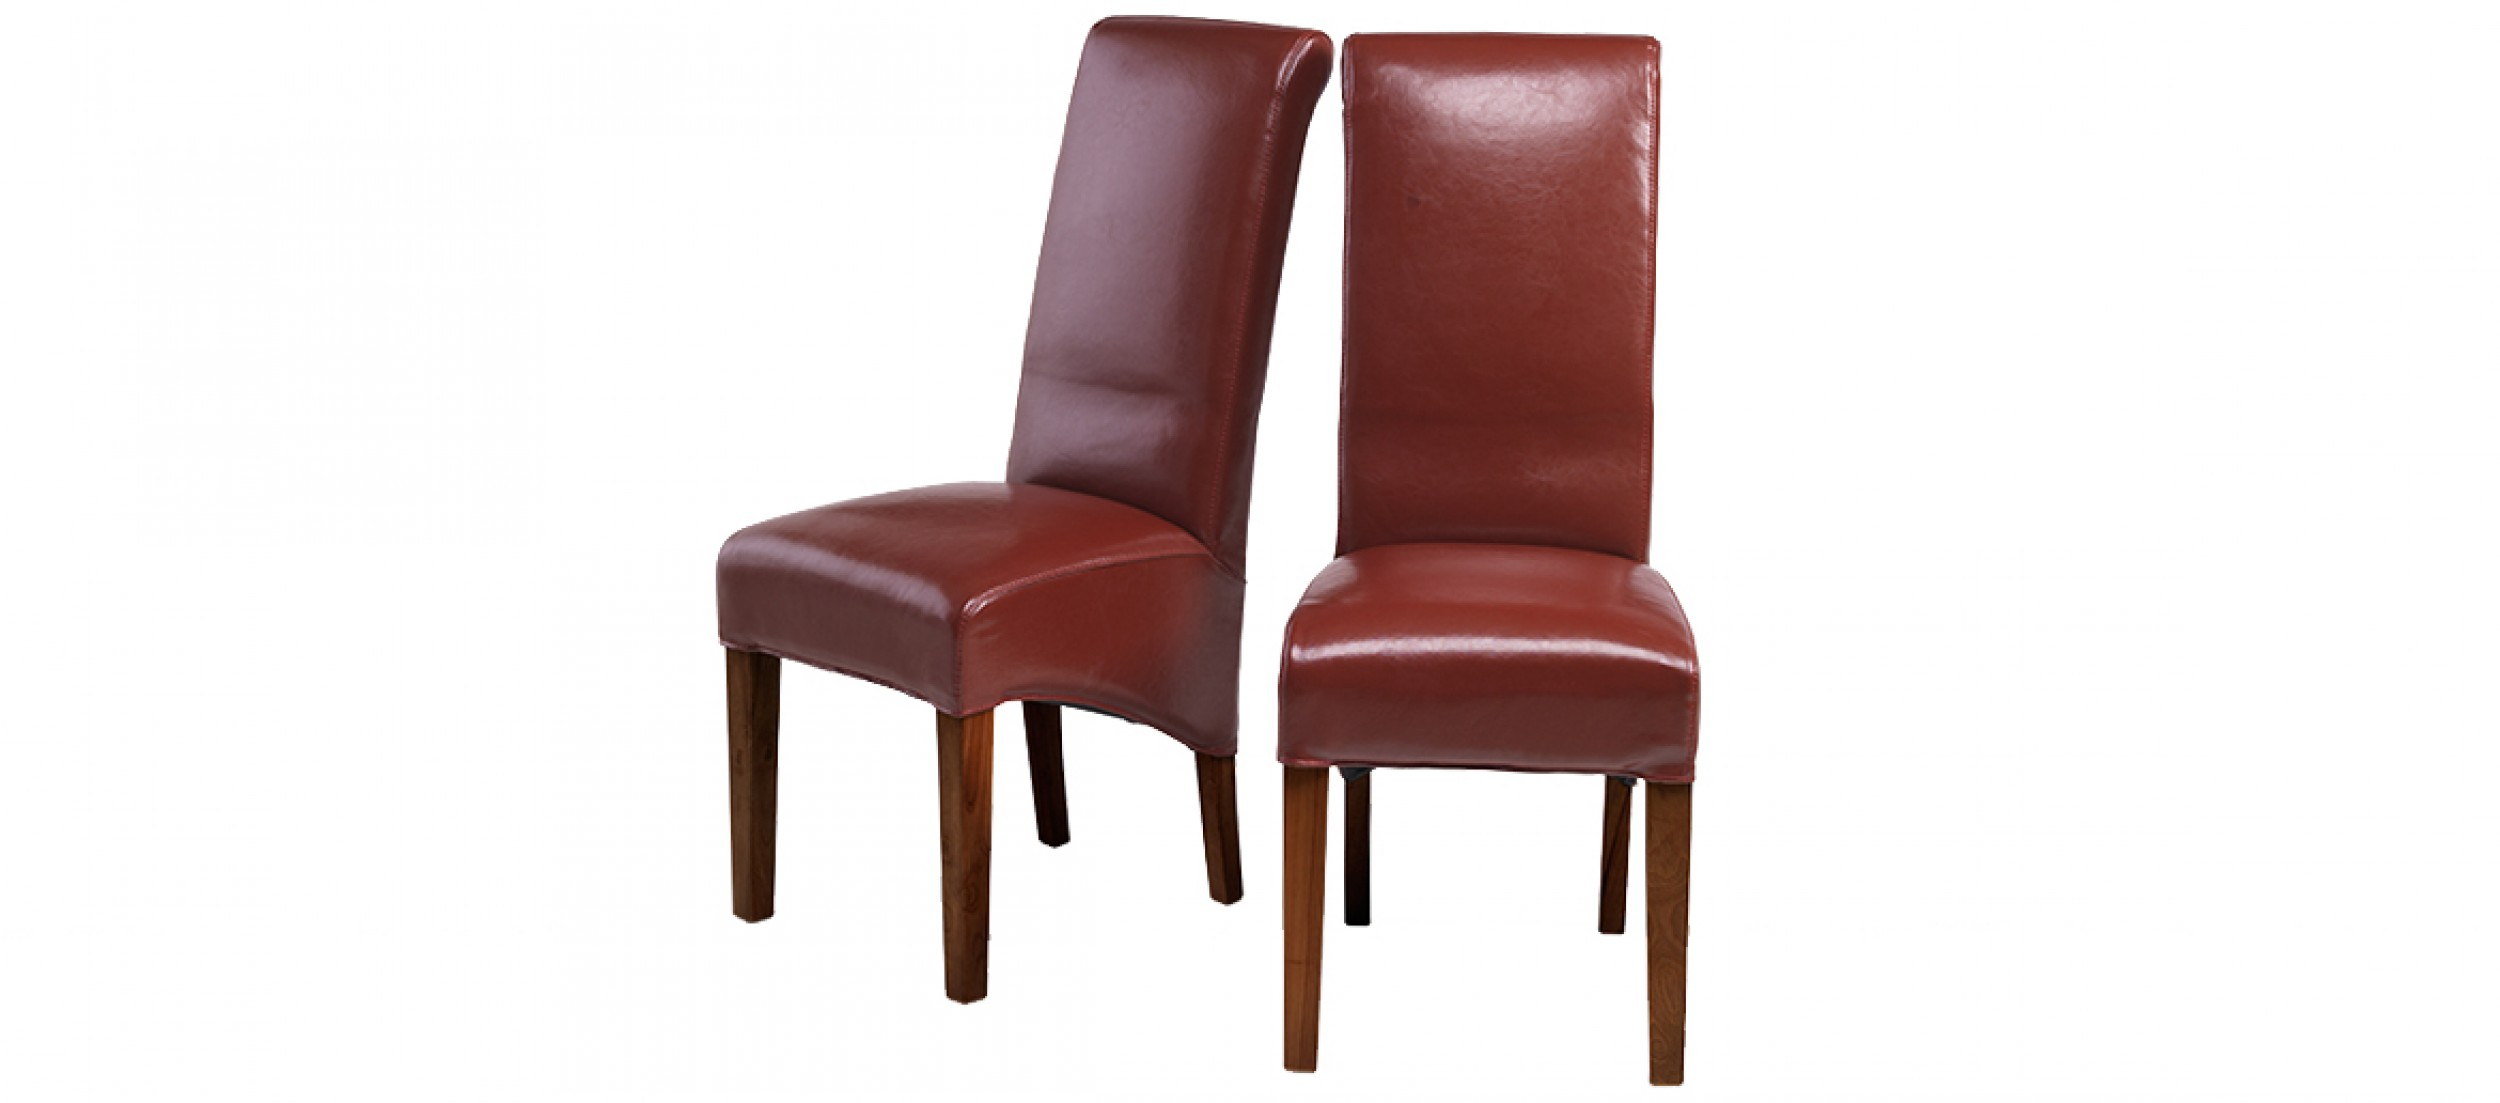 Cube Chairs Cube Bonded Leather Dining Chairs Red Pair